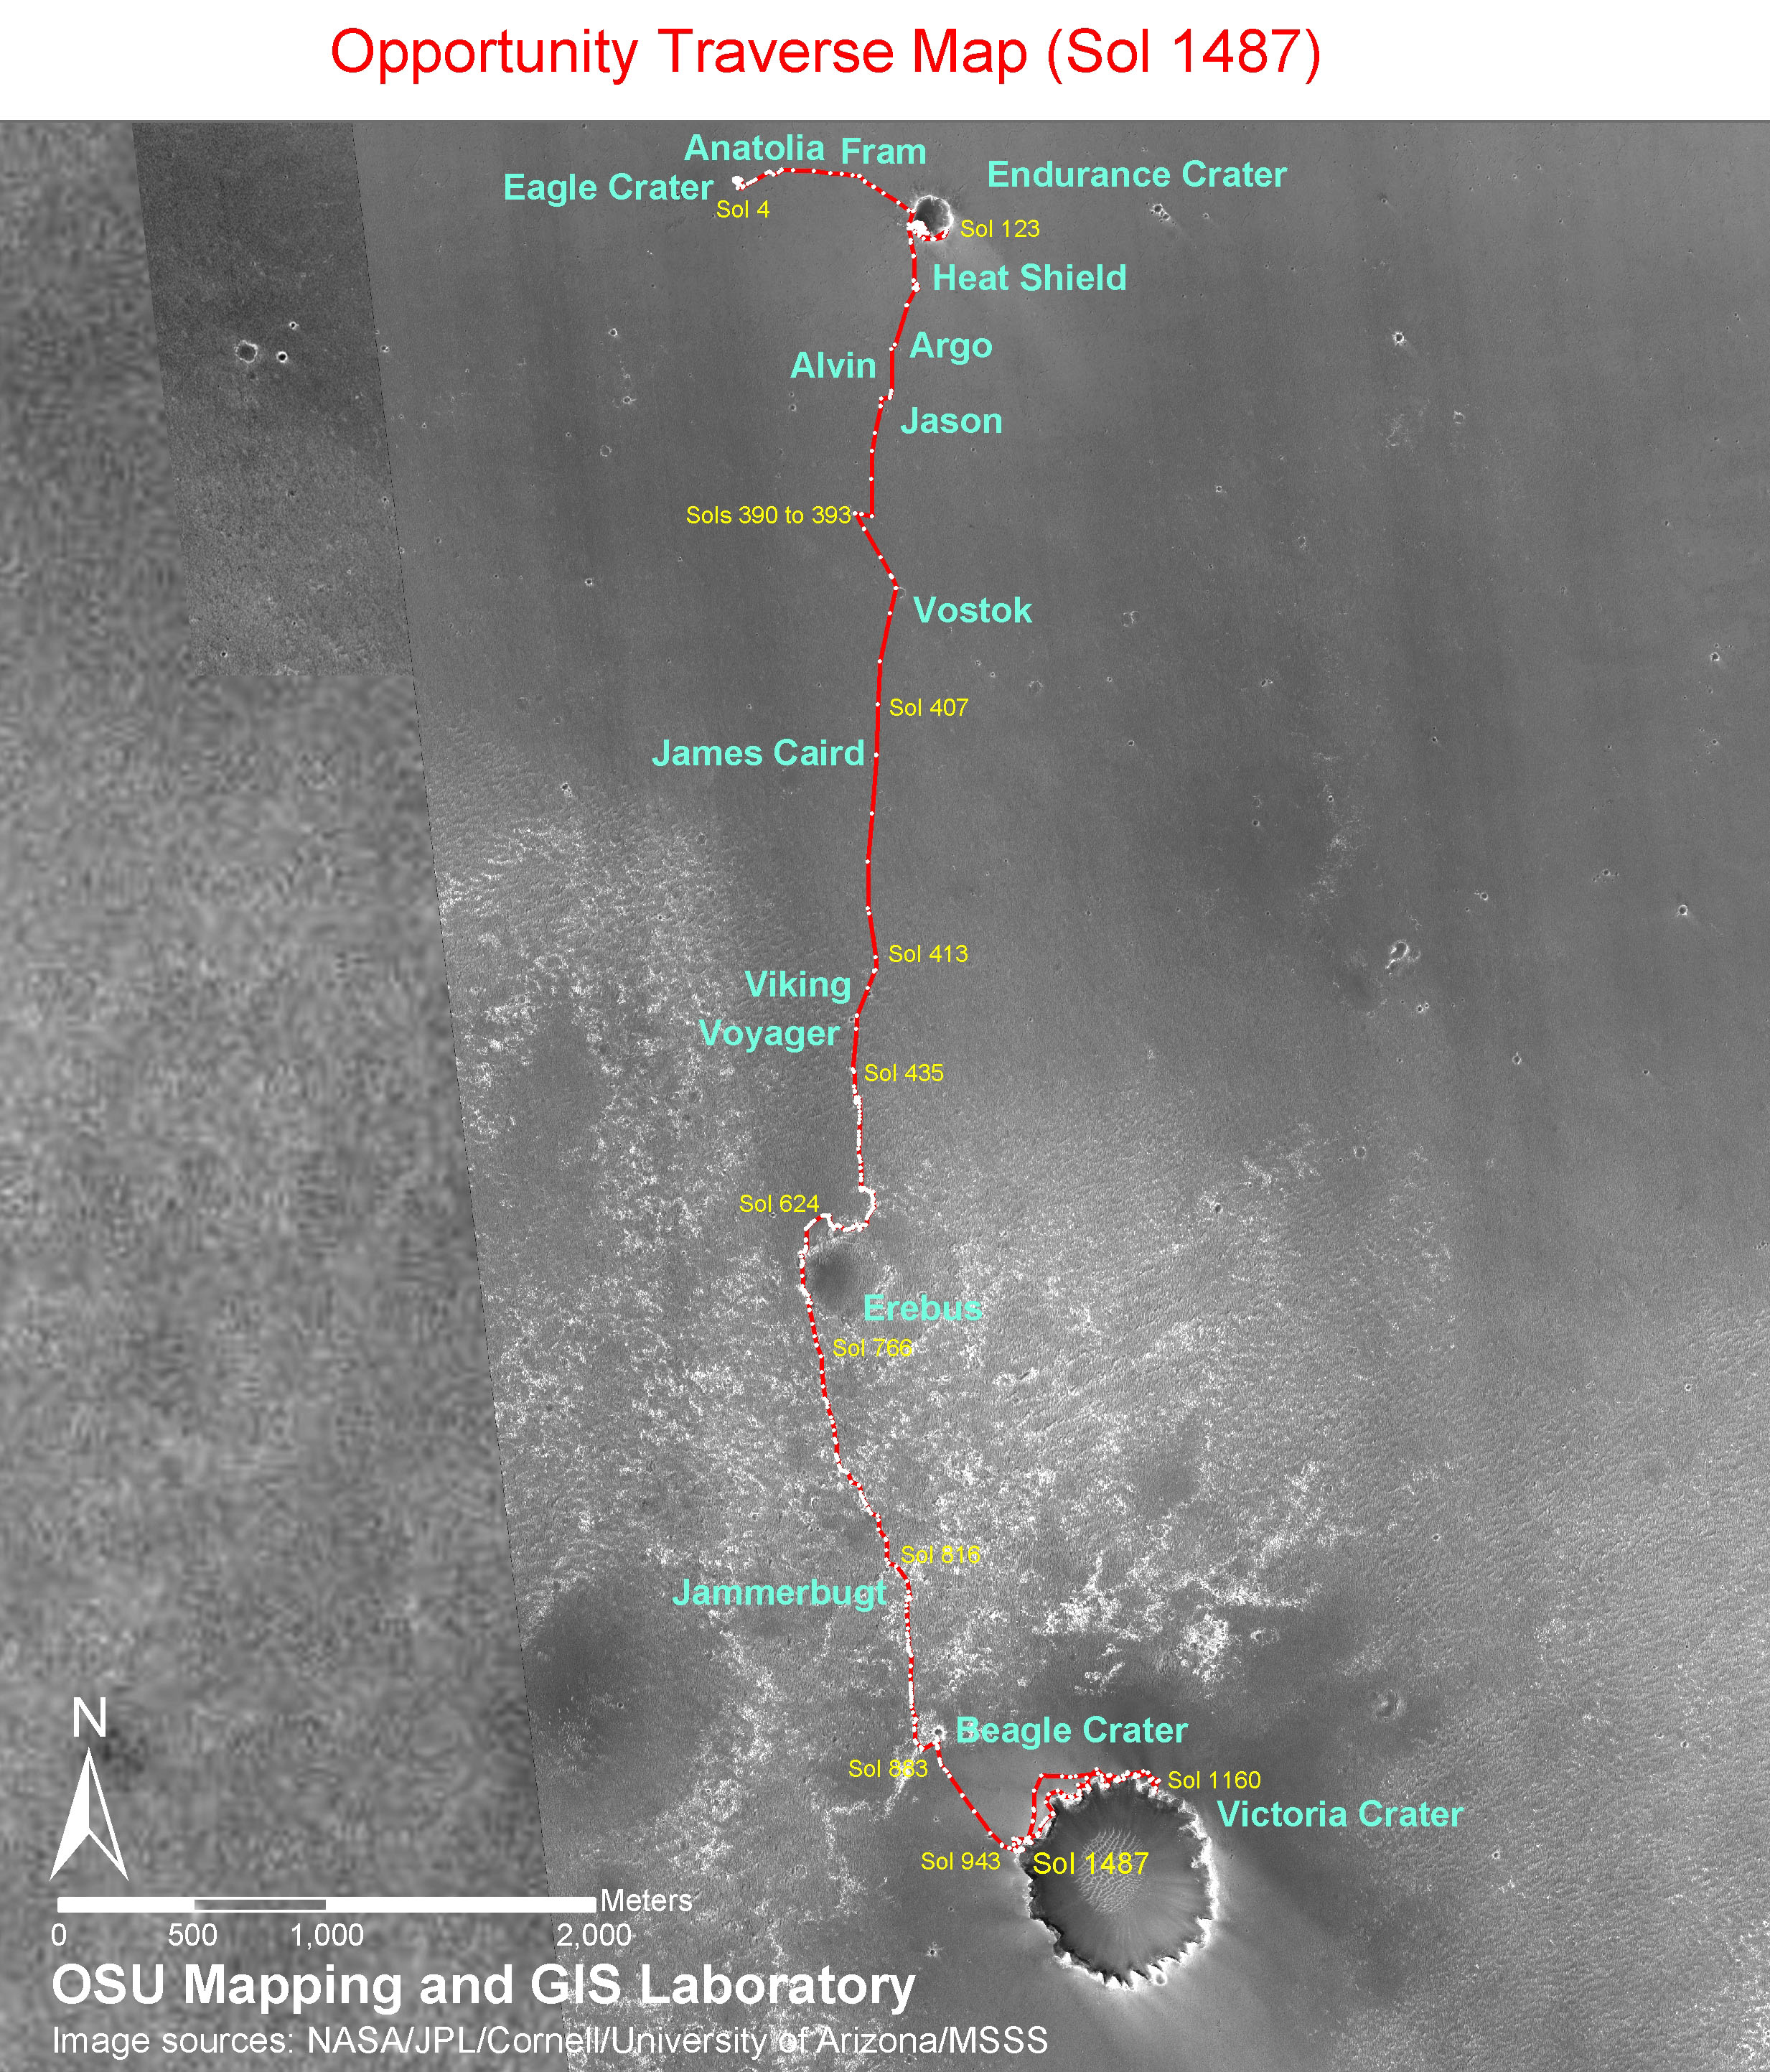 File Opportunity rover traverse map sol 1487 Wikimedia mons